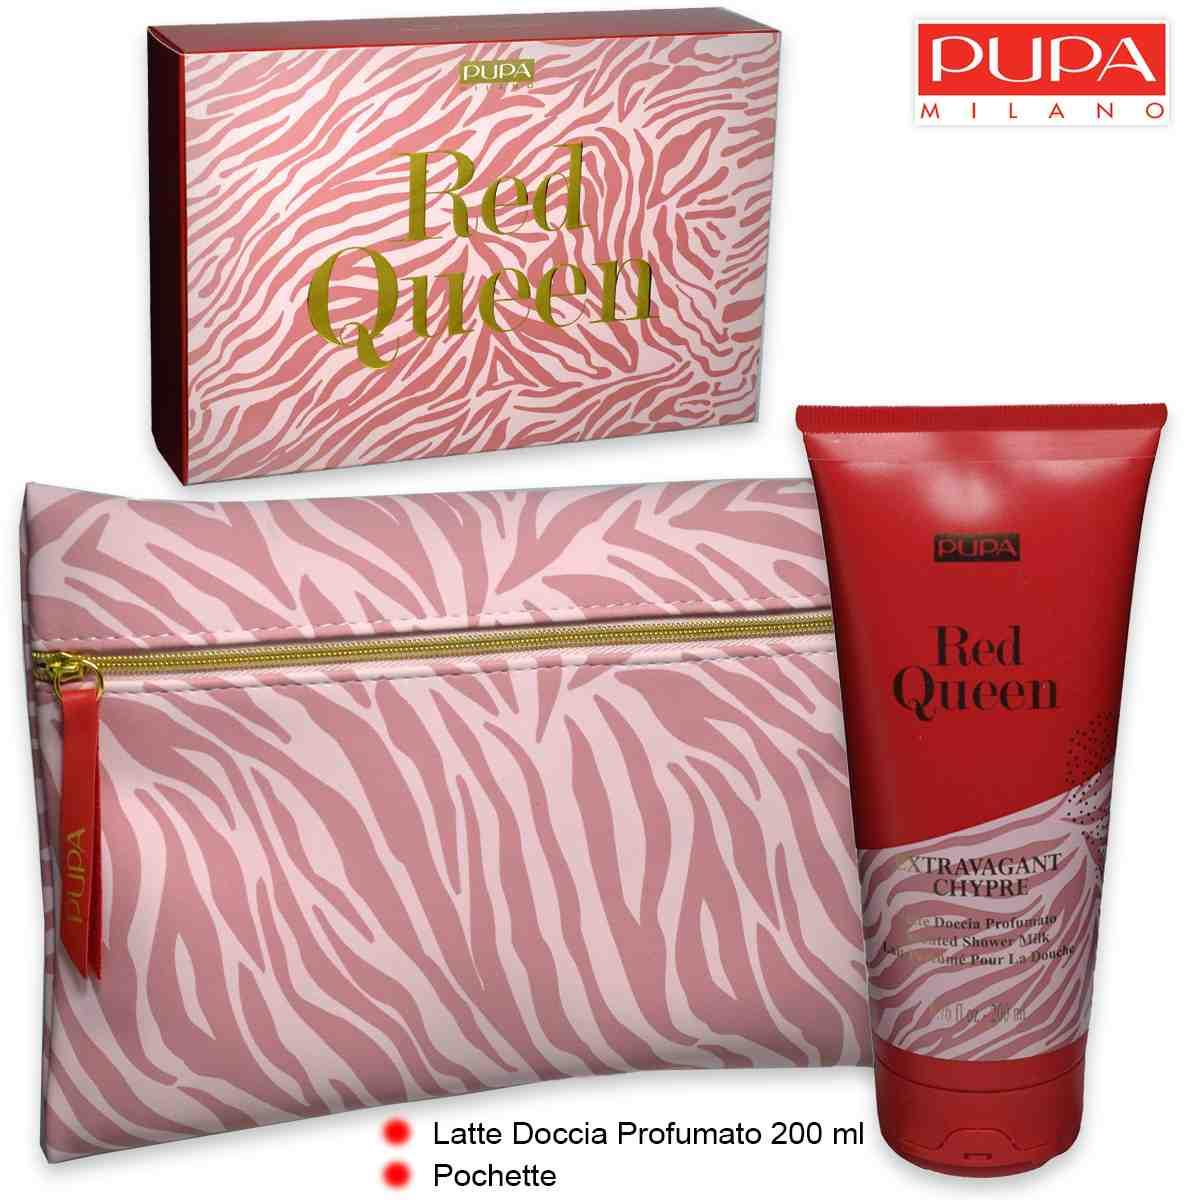 Pupa red queen latte doccia 200 ml + pochette extravagant chypre